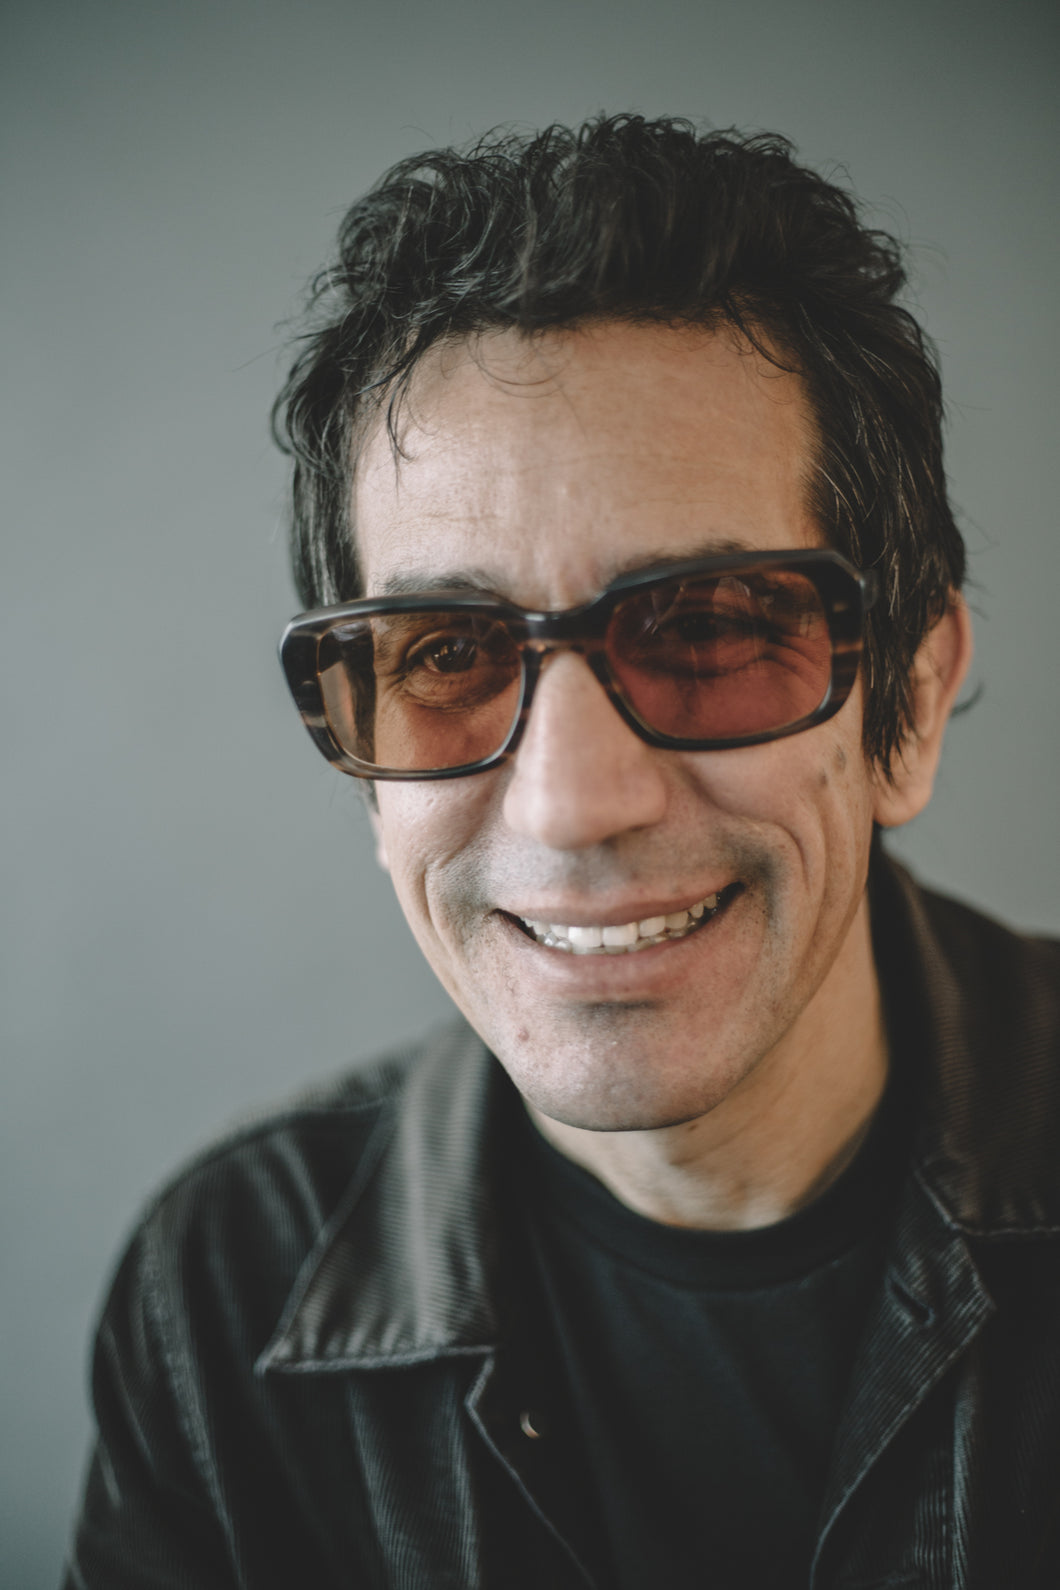 A.J. Croce 'By Request' Album Release Show featuring the studio band - 3/18